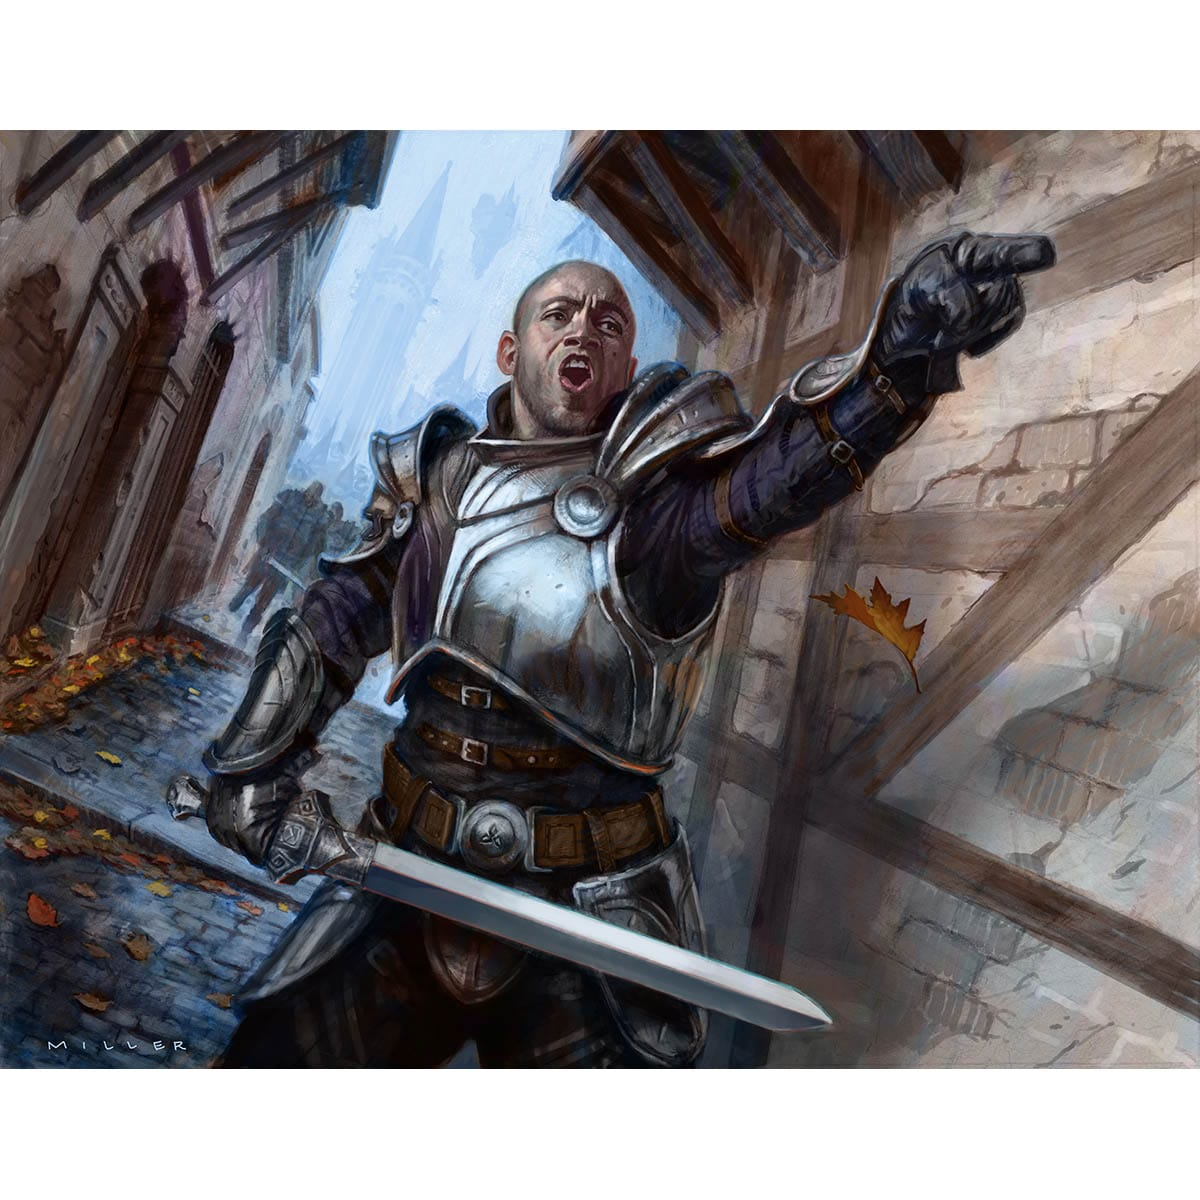 Haazda Officer Print - Print - Original Magic Art - Accessories for Magic the Gathering and other card games